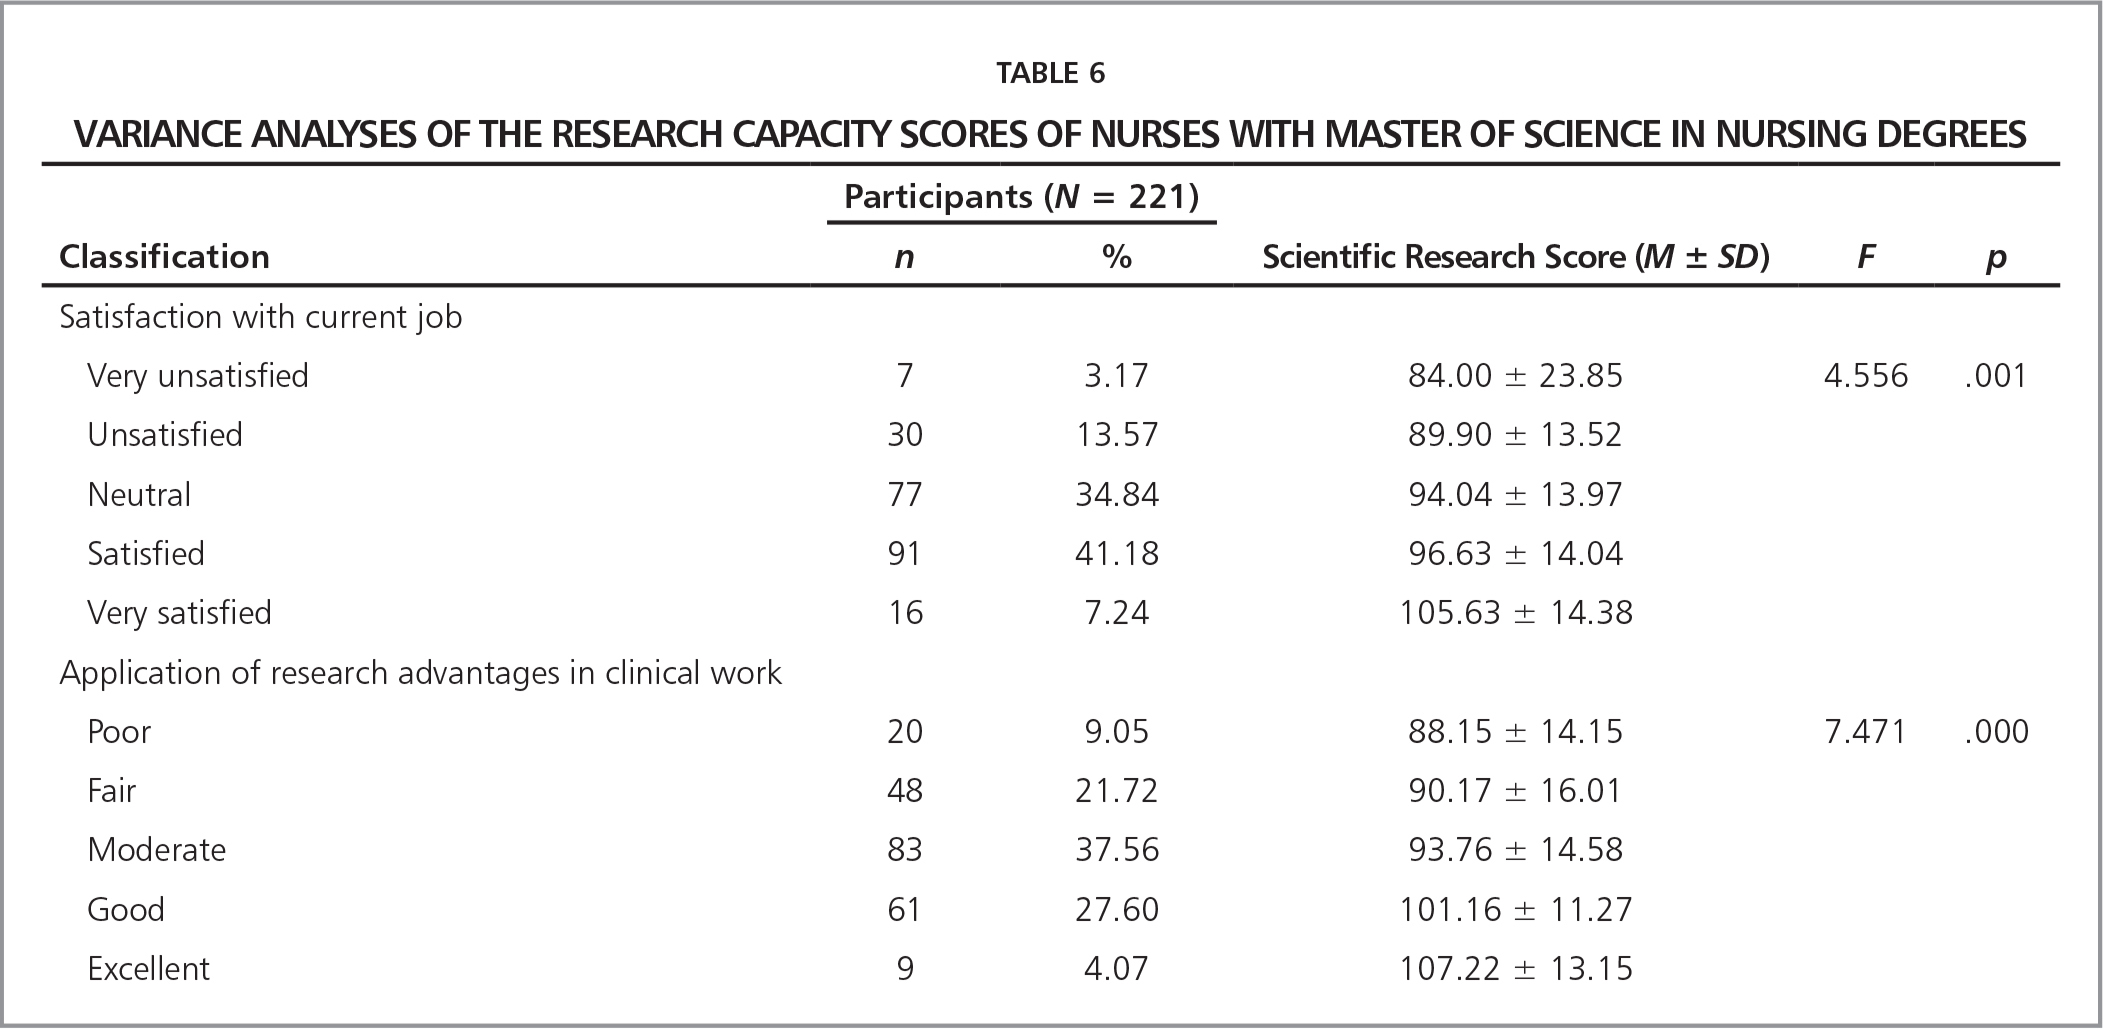 Variance Analyses of the Research Capacity Scores of Nurses with Master of Science in Nursing Degrees